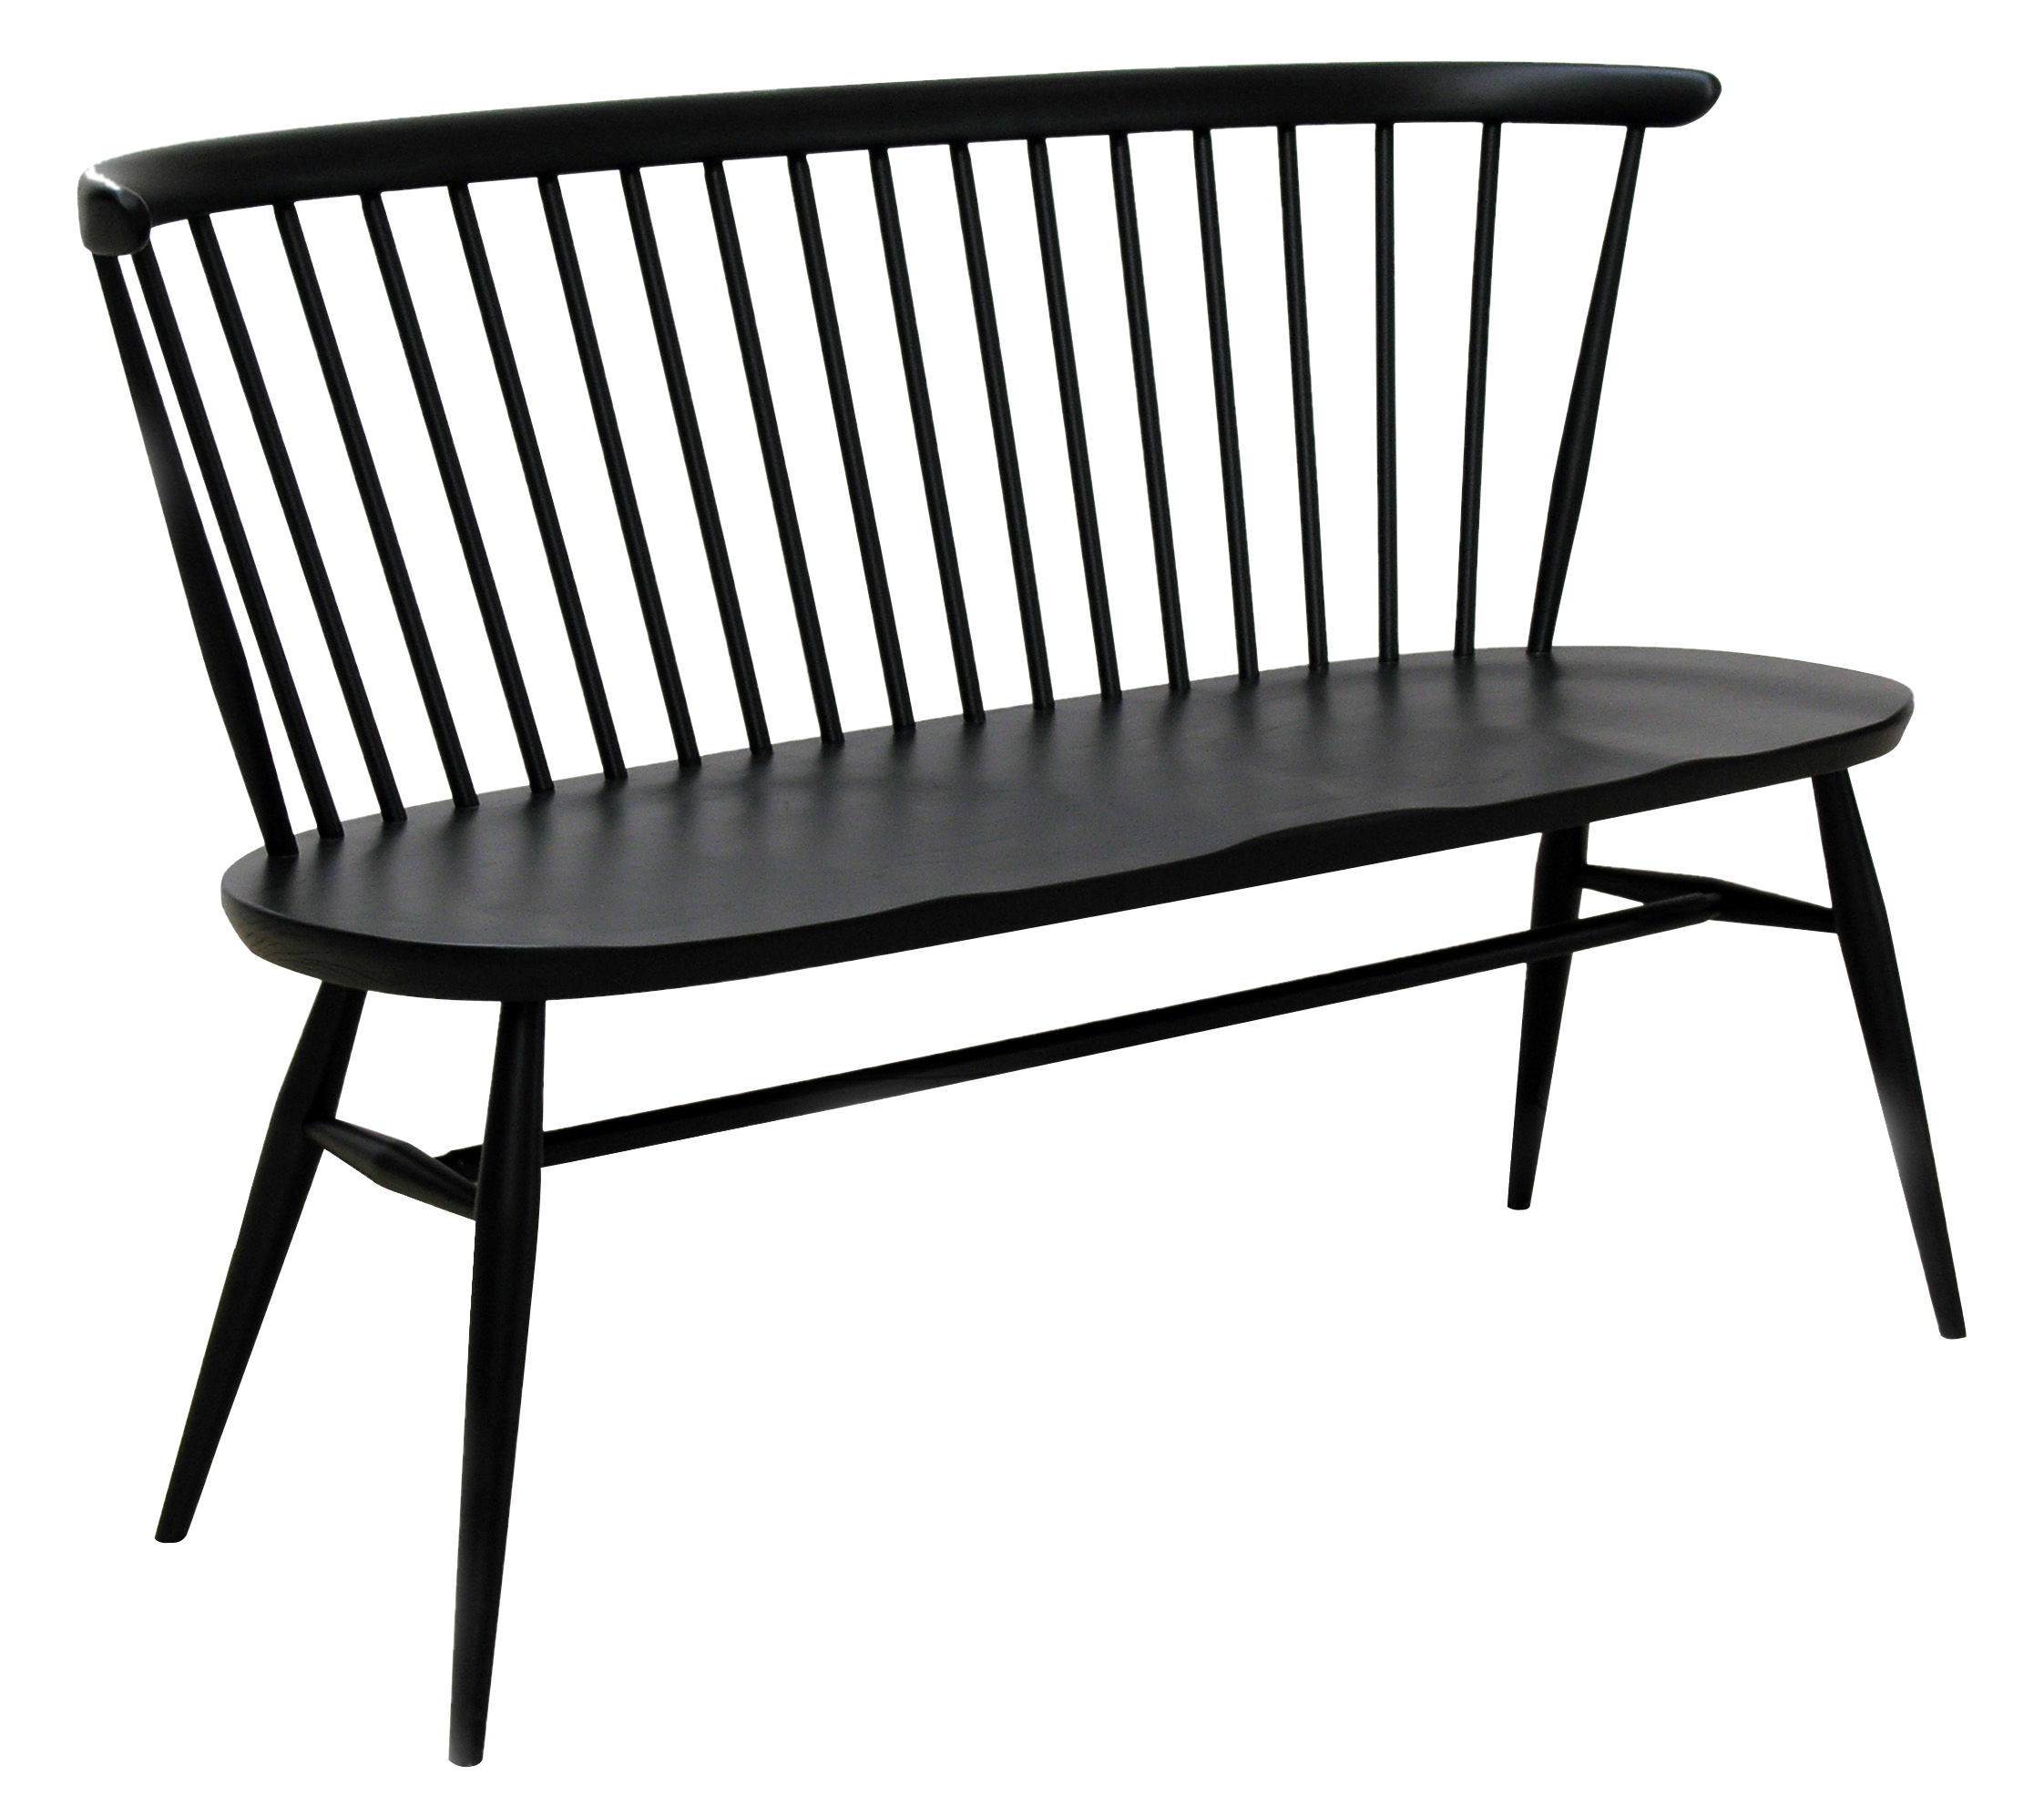 Furniture - Benches - Love Seat Bench with backrest - Reissue 1955 by Ercol - Black - Natural beechwood, Solid elm